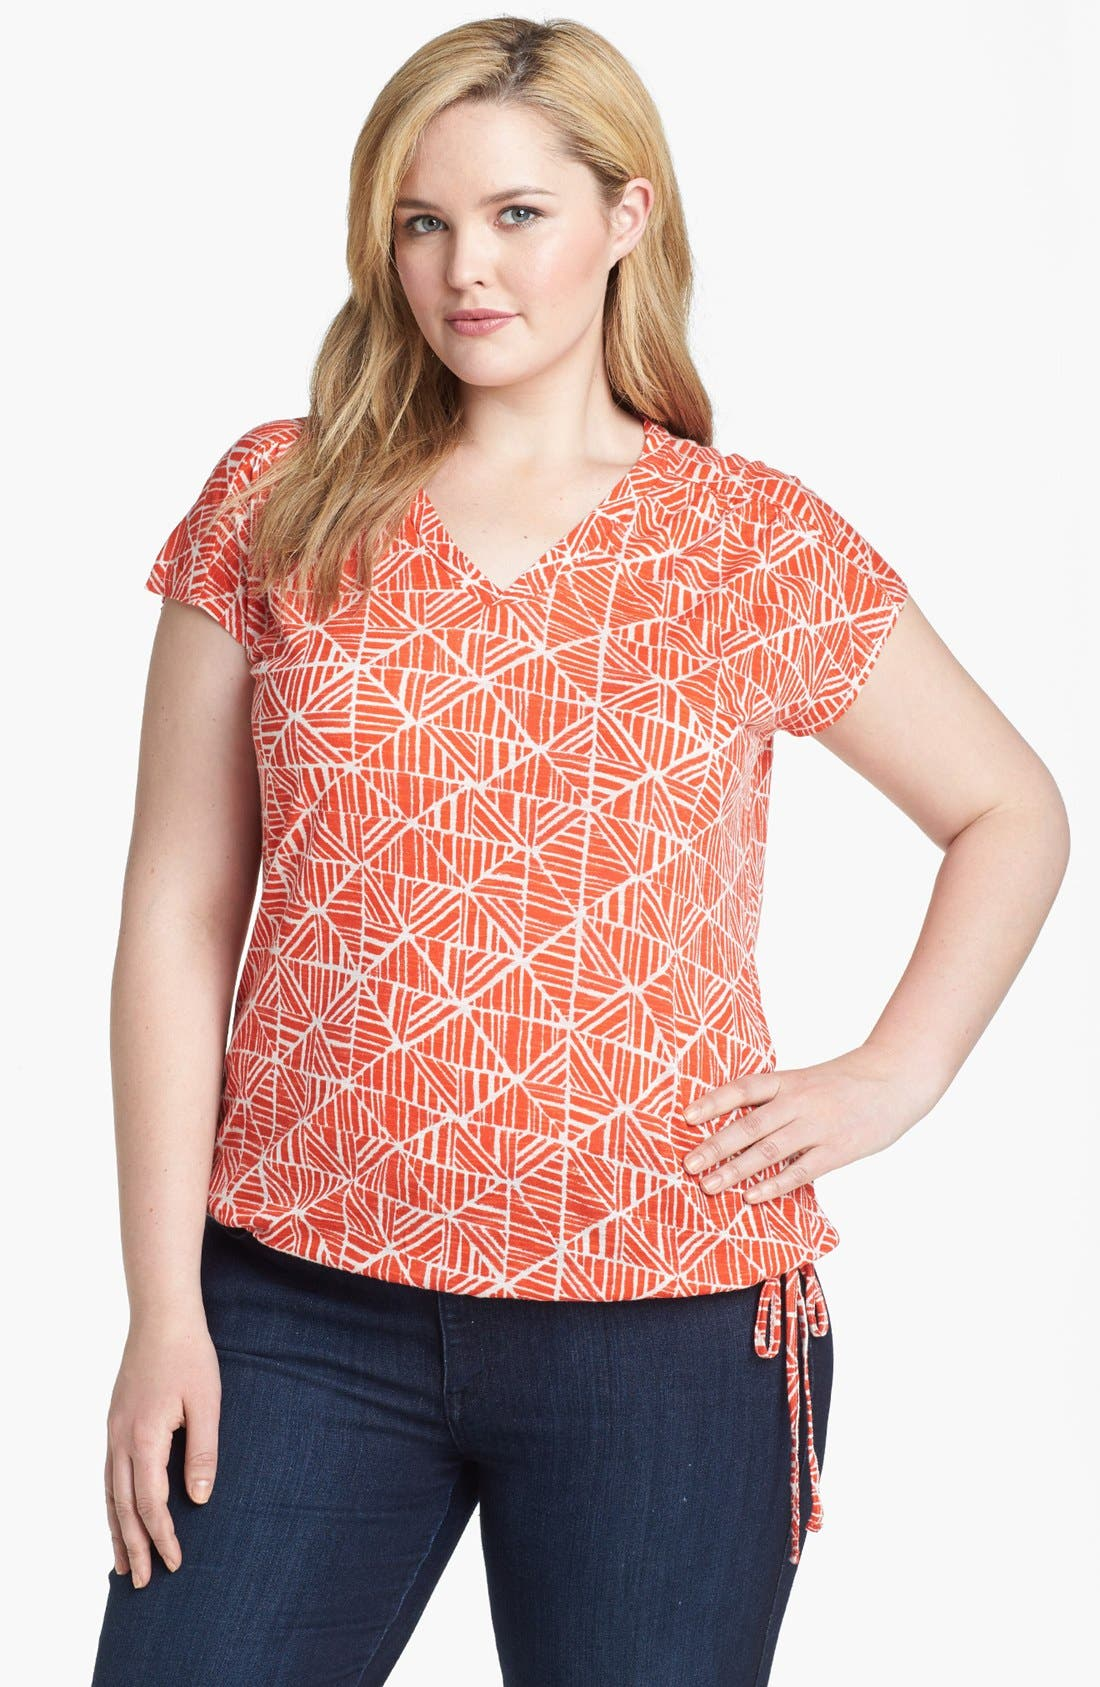 Alternate Image 1 Selected - Lucky Brand 'Mosaic Tile' Print Tee (Plus Size)